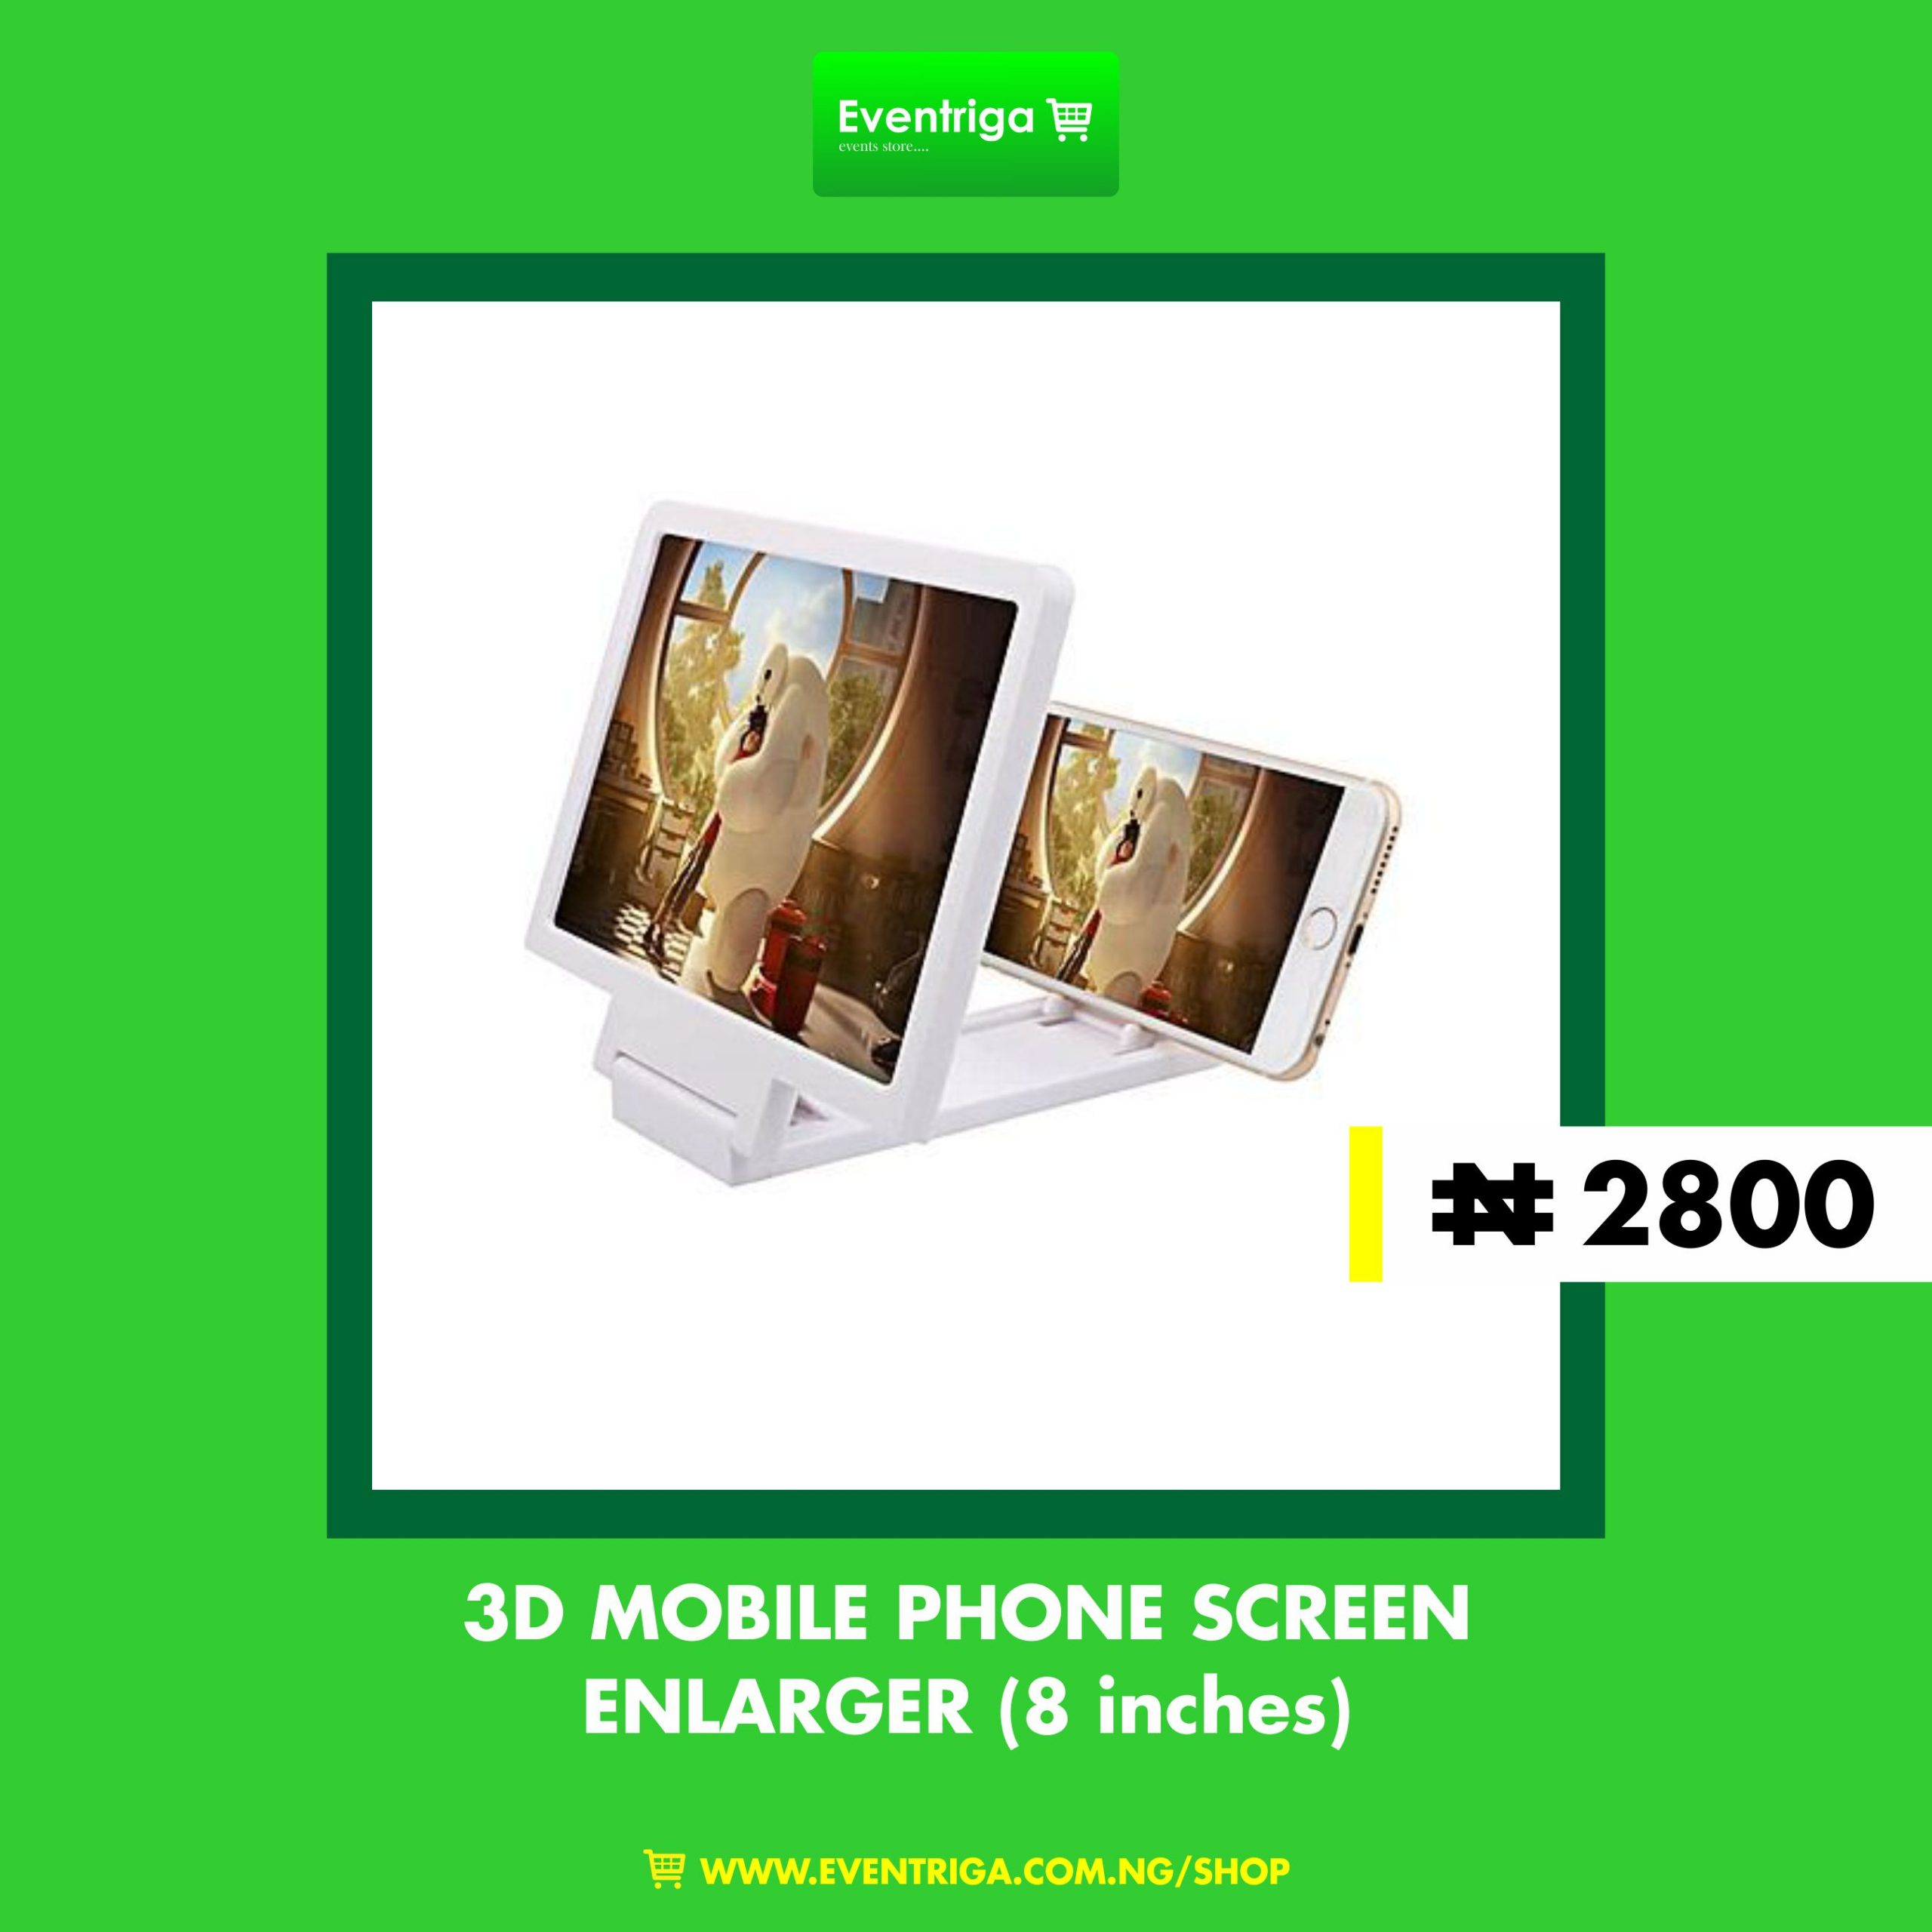 3D Screen Enlarger For Mobile Phone (8 inches)